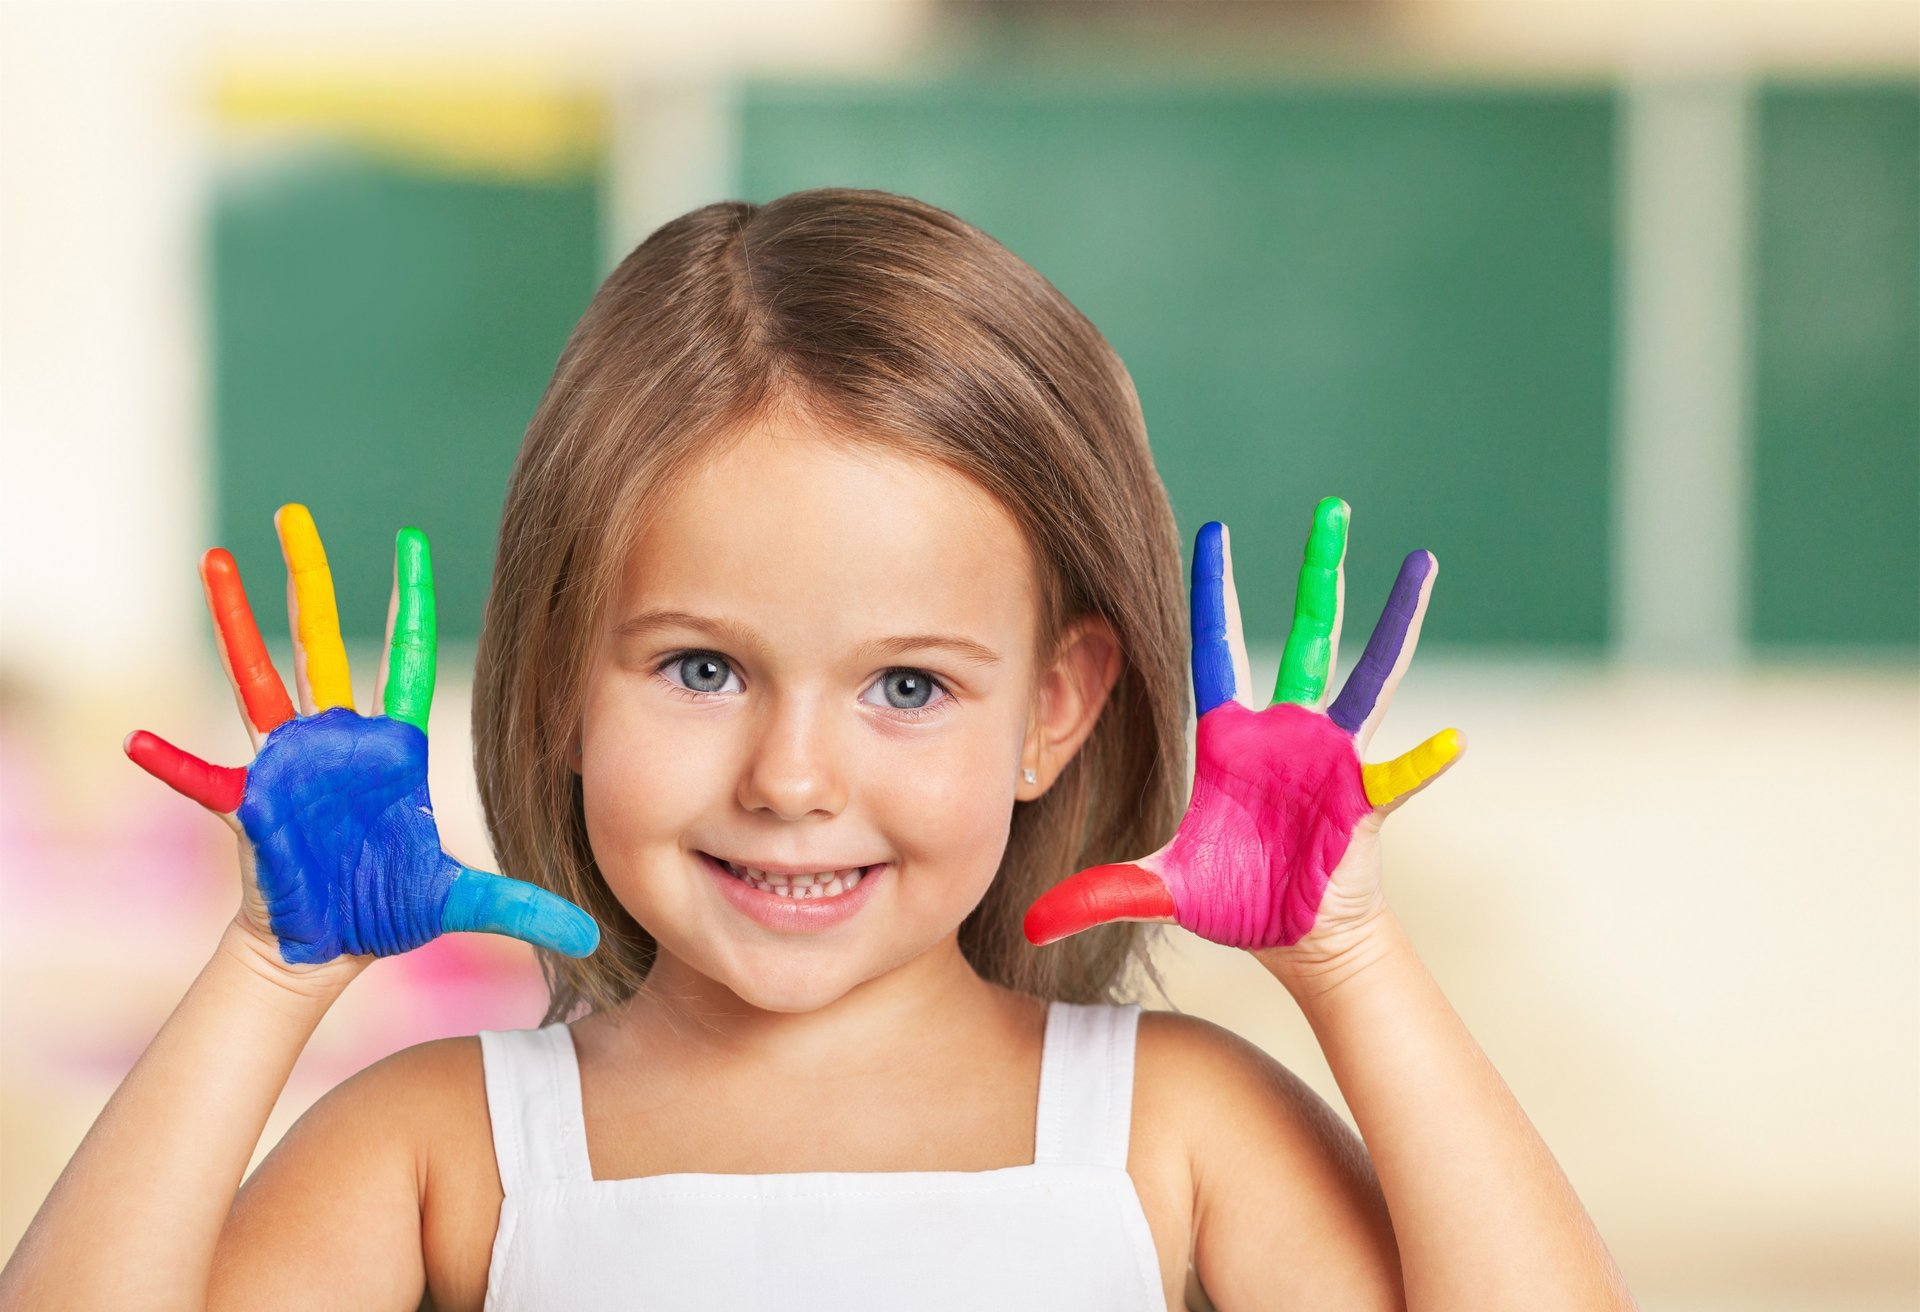 Many art galleries offer activities that allow the kids to try their own hand at painting (or even, as pictured above, try painting their own hands).